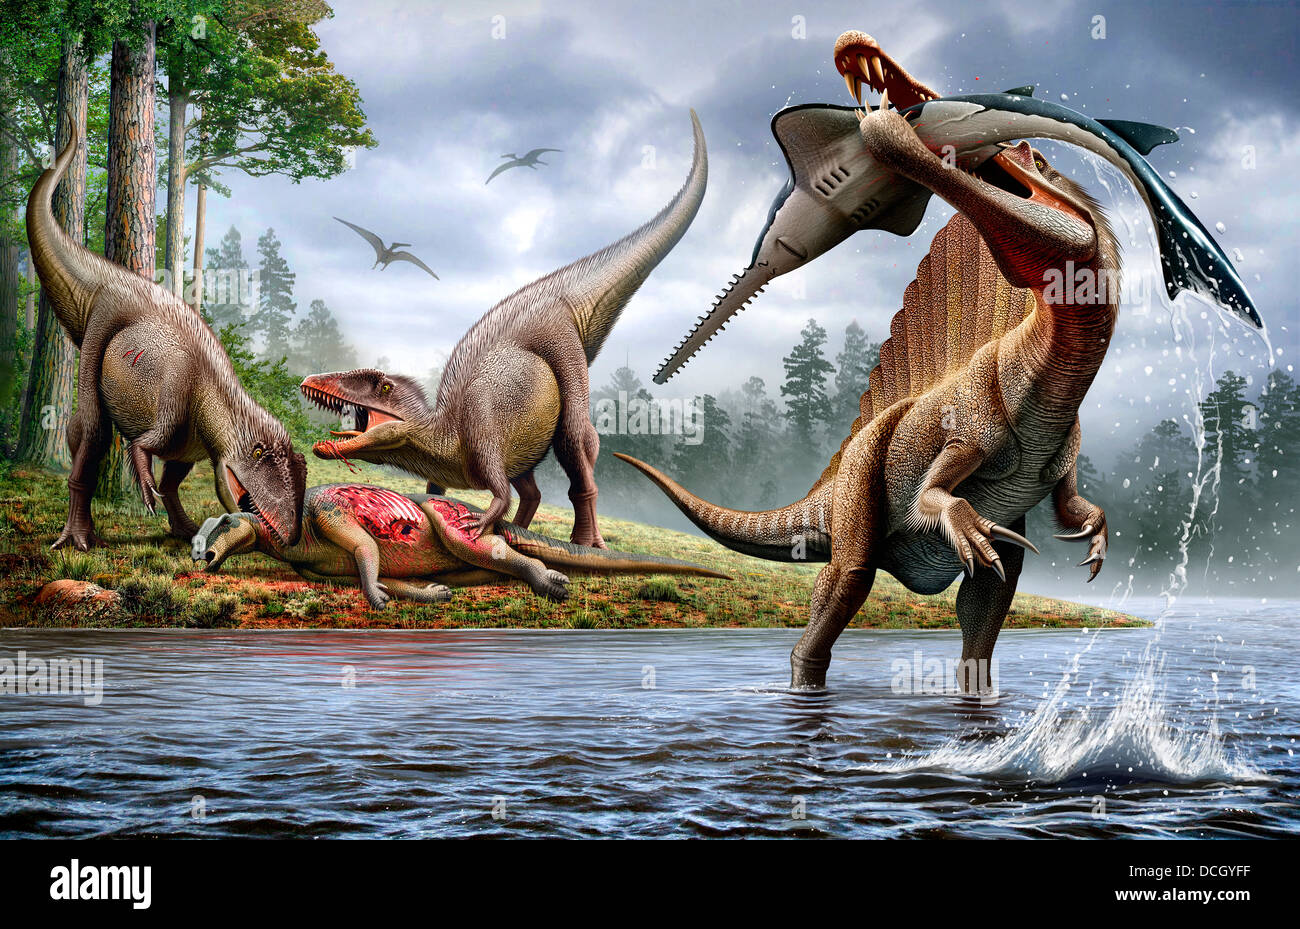 A Spinosaurus hunting an Onchopristis while two Carcharodontosaurus eat the carcass Ouranosaurus in the background.. - Stock Image